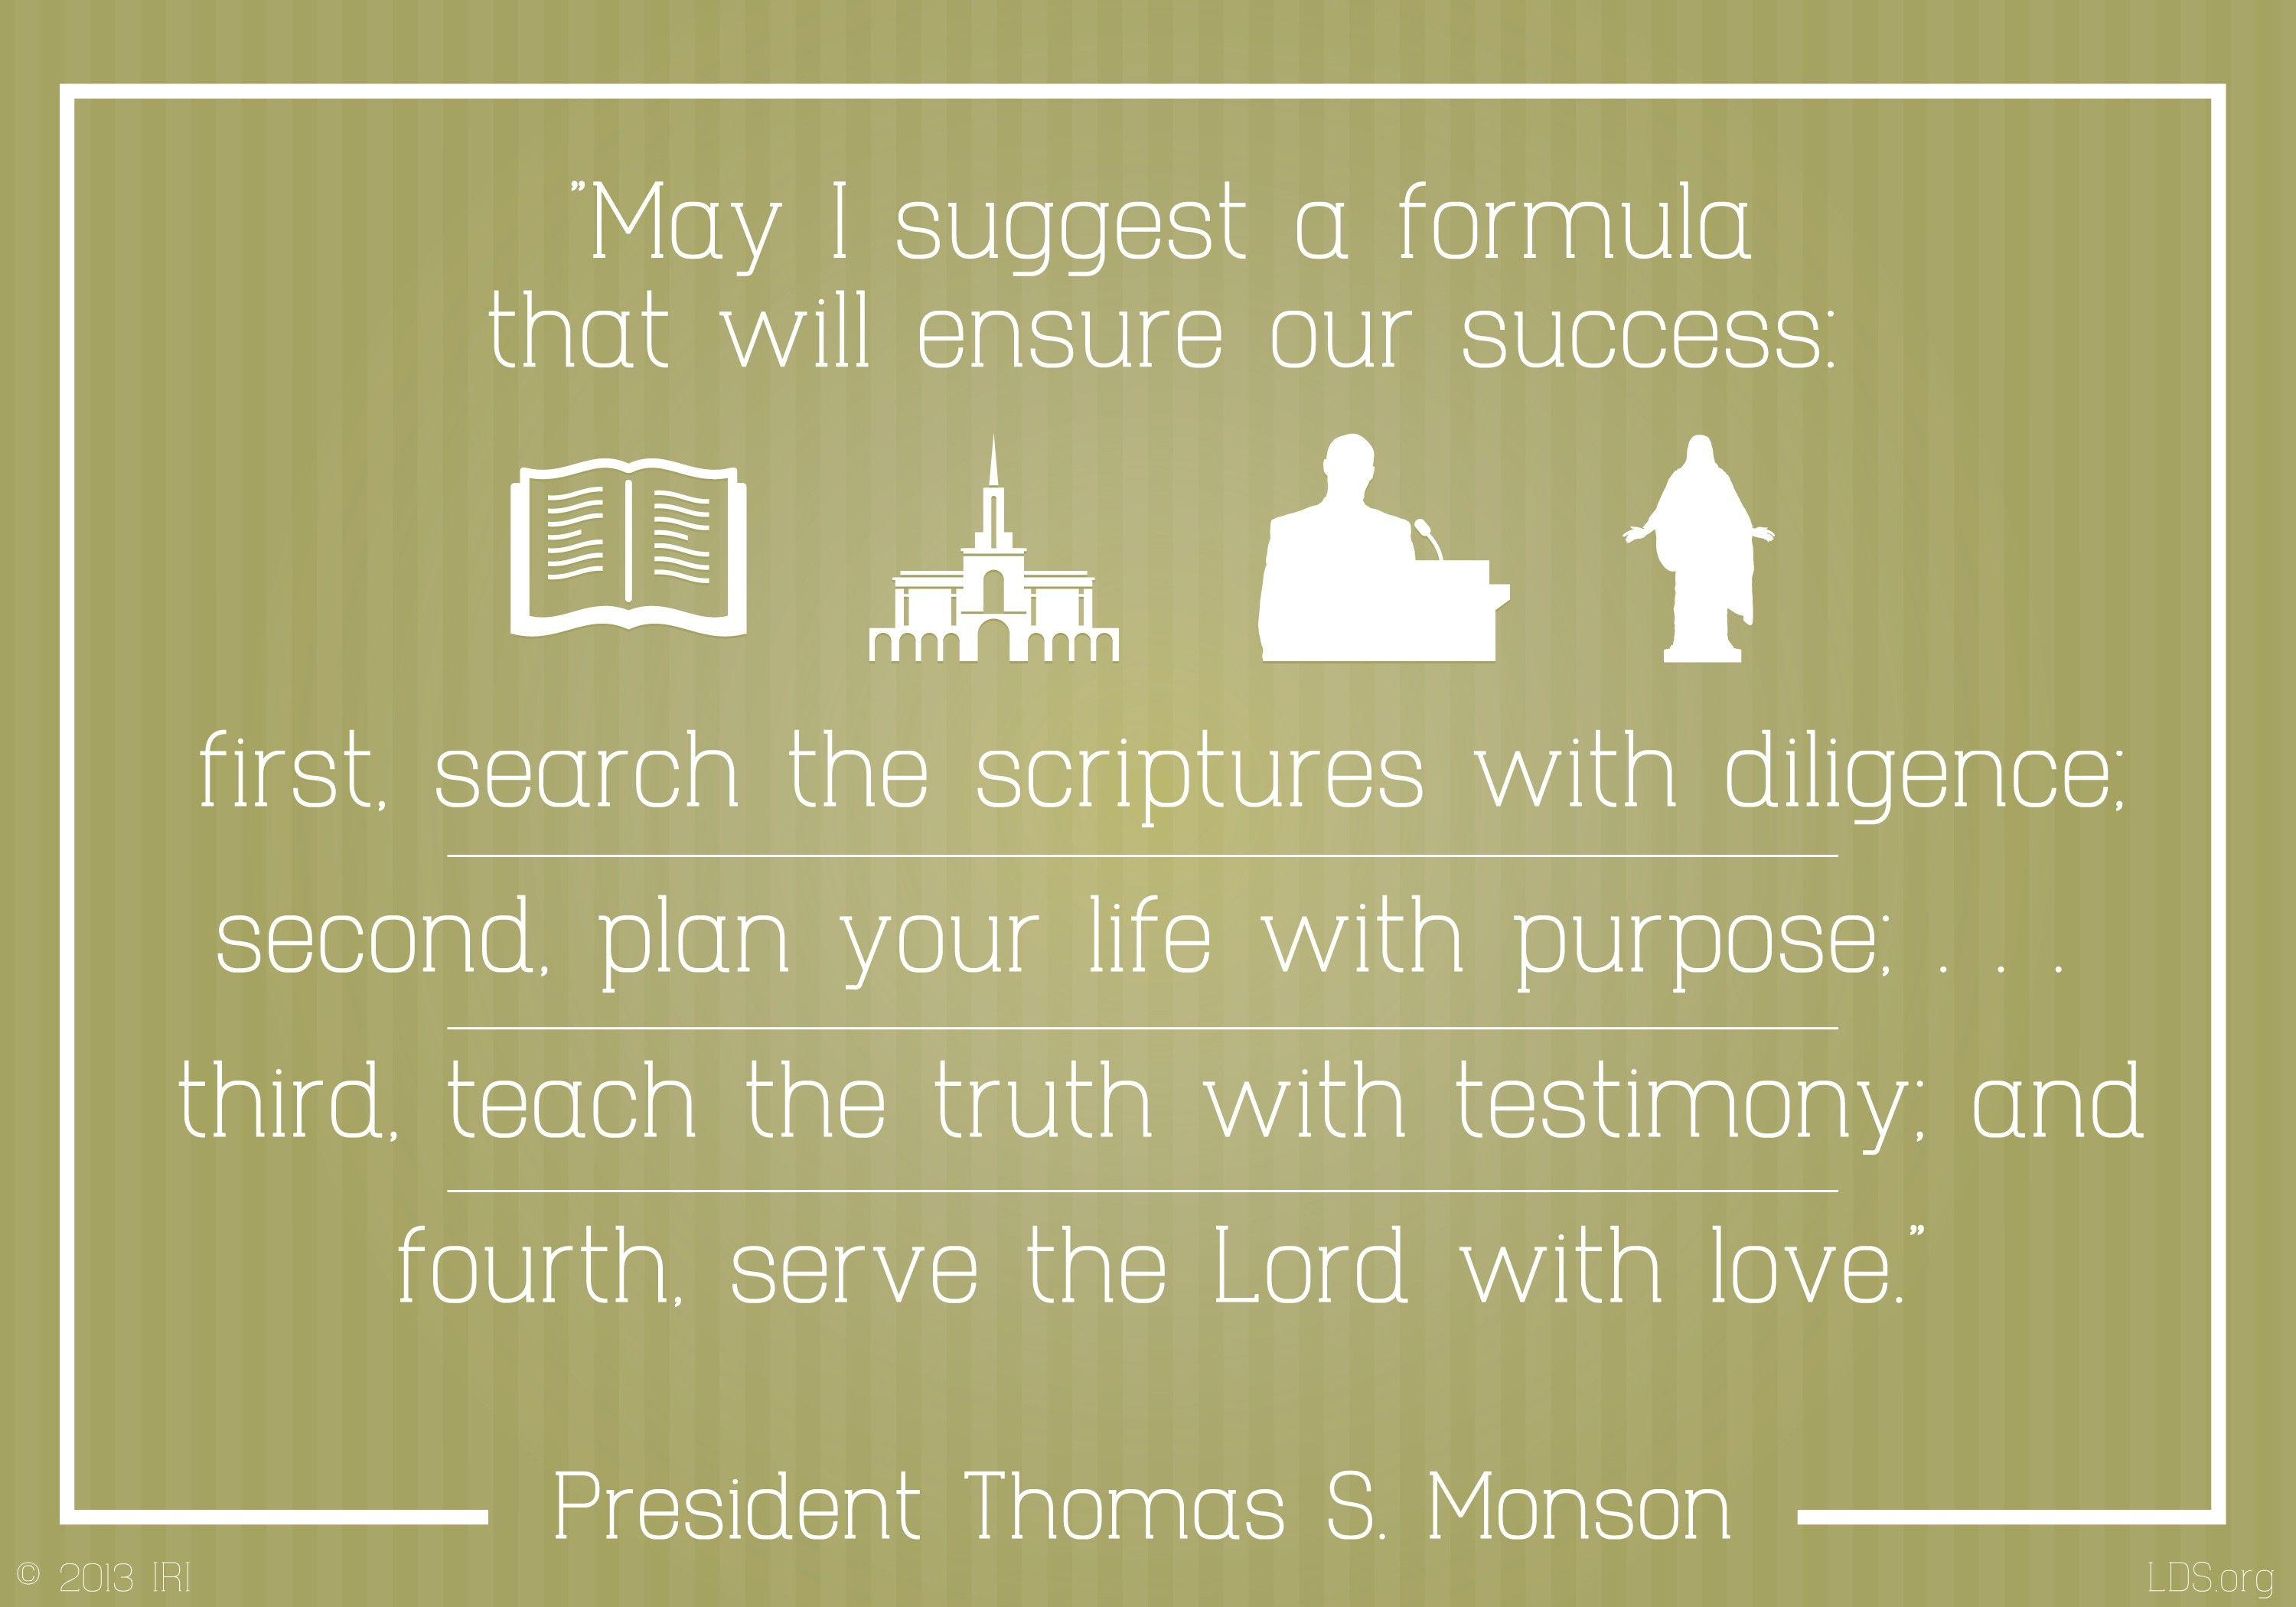 """""""May I suggest a formula that will ensure our success: first, search the scriptures with diligence; second, plan your life with purpose…; third, teach the truth with testimony; and fourth, serve the Lord with love.""""—President Thomas S. Monson, """"Come, All Ye Sons of God"""""""